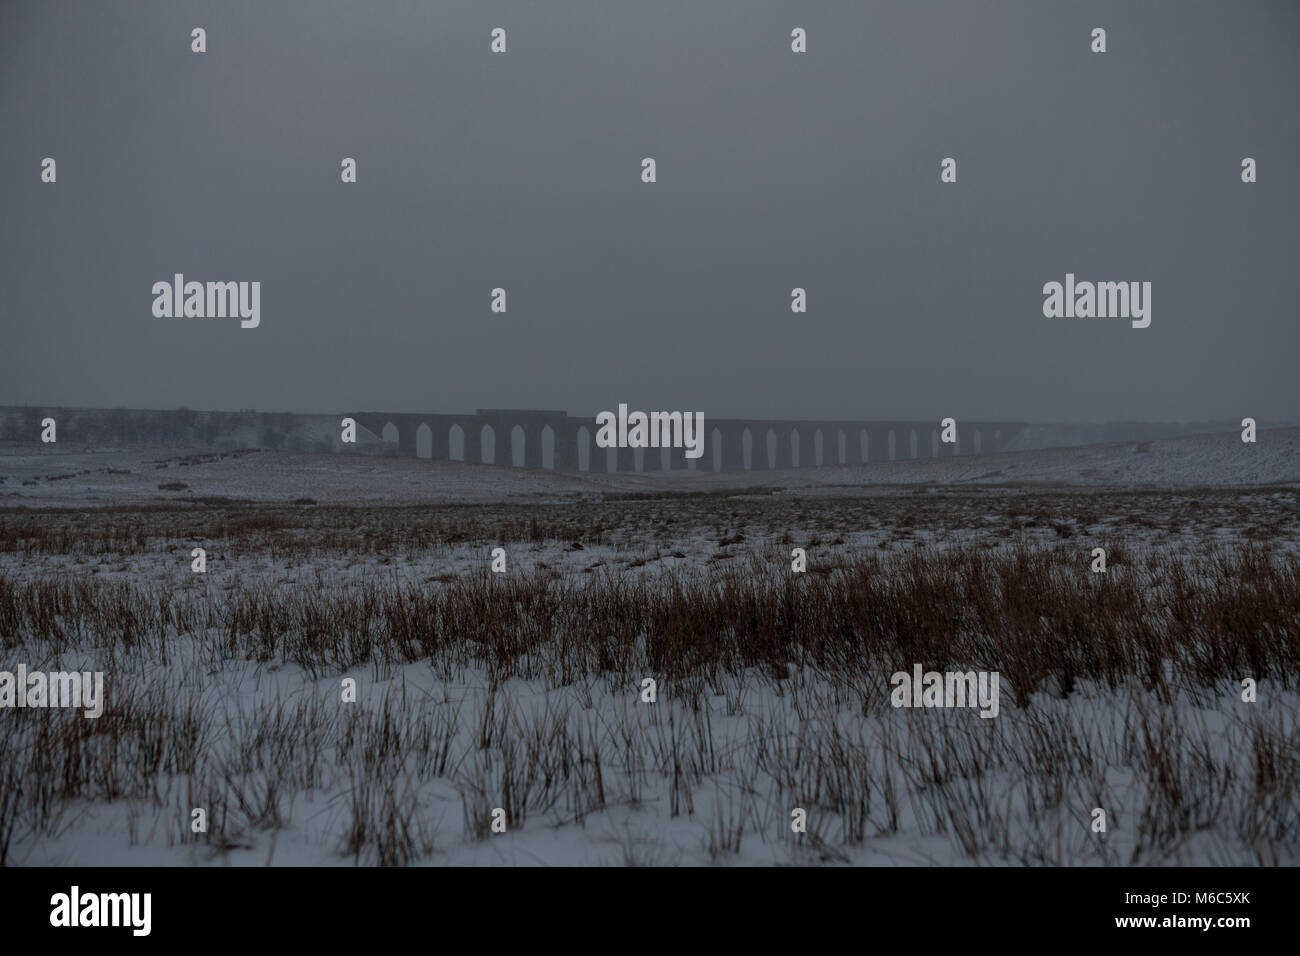 A Northern Rail class 158 express sprinter train crosses  Ribblehead viaduct  at dusk in the snow - Stock Image